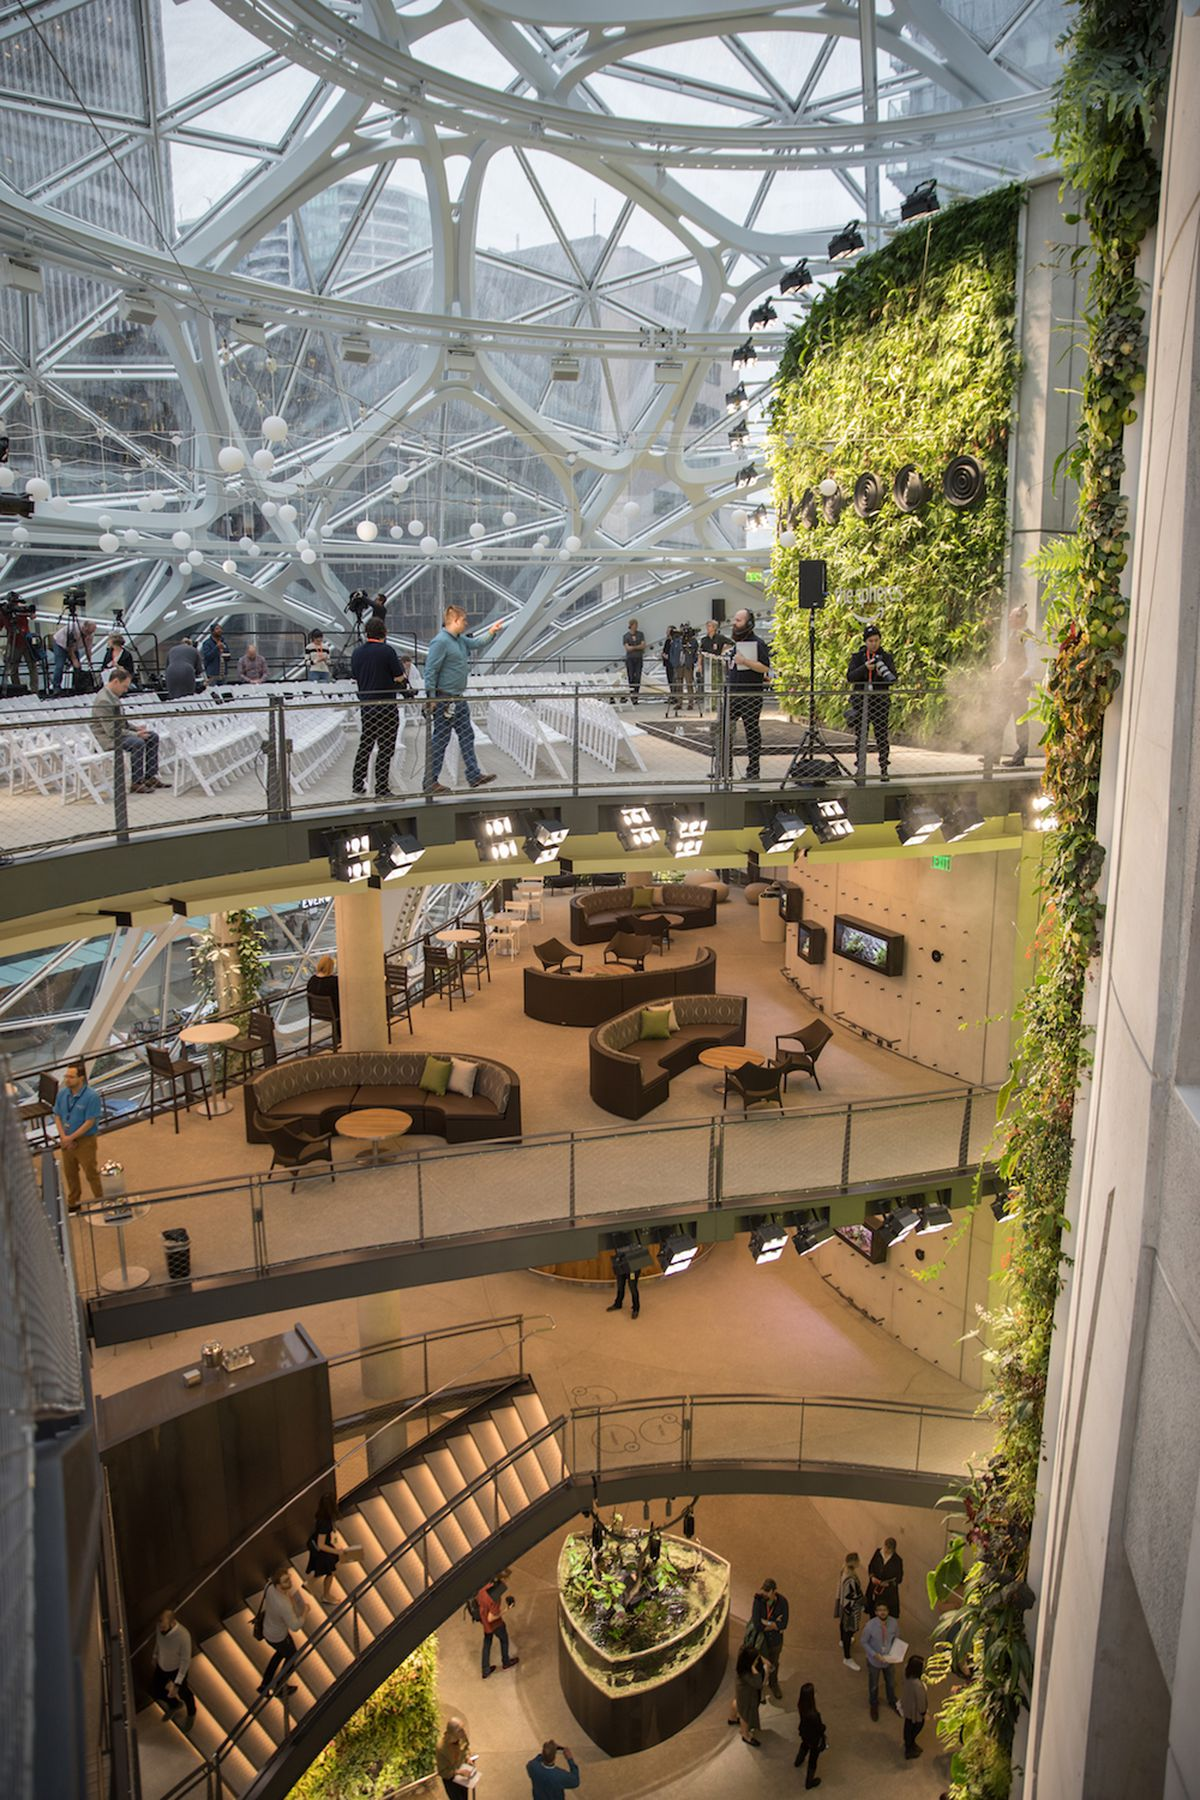 Inside the Amazon Spheres: The plants, the architecture, and a